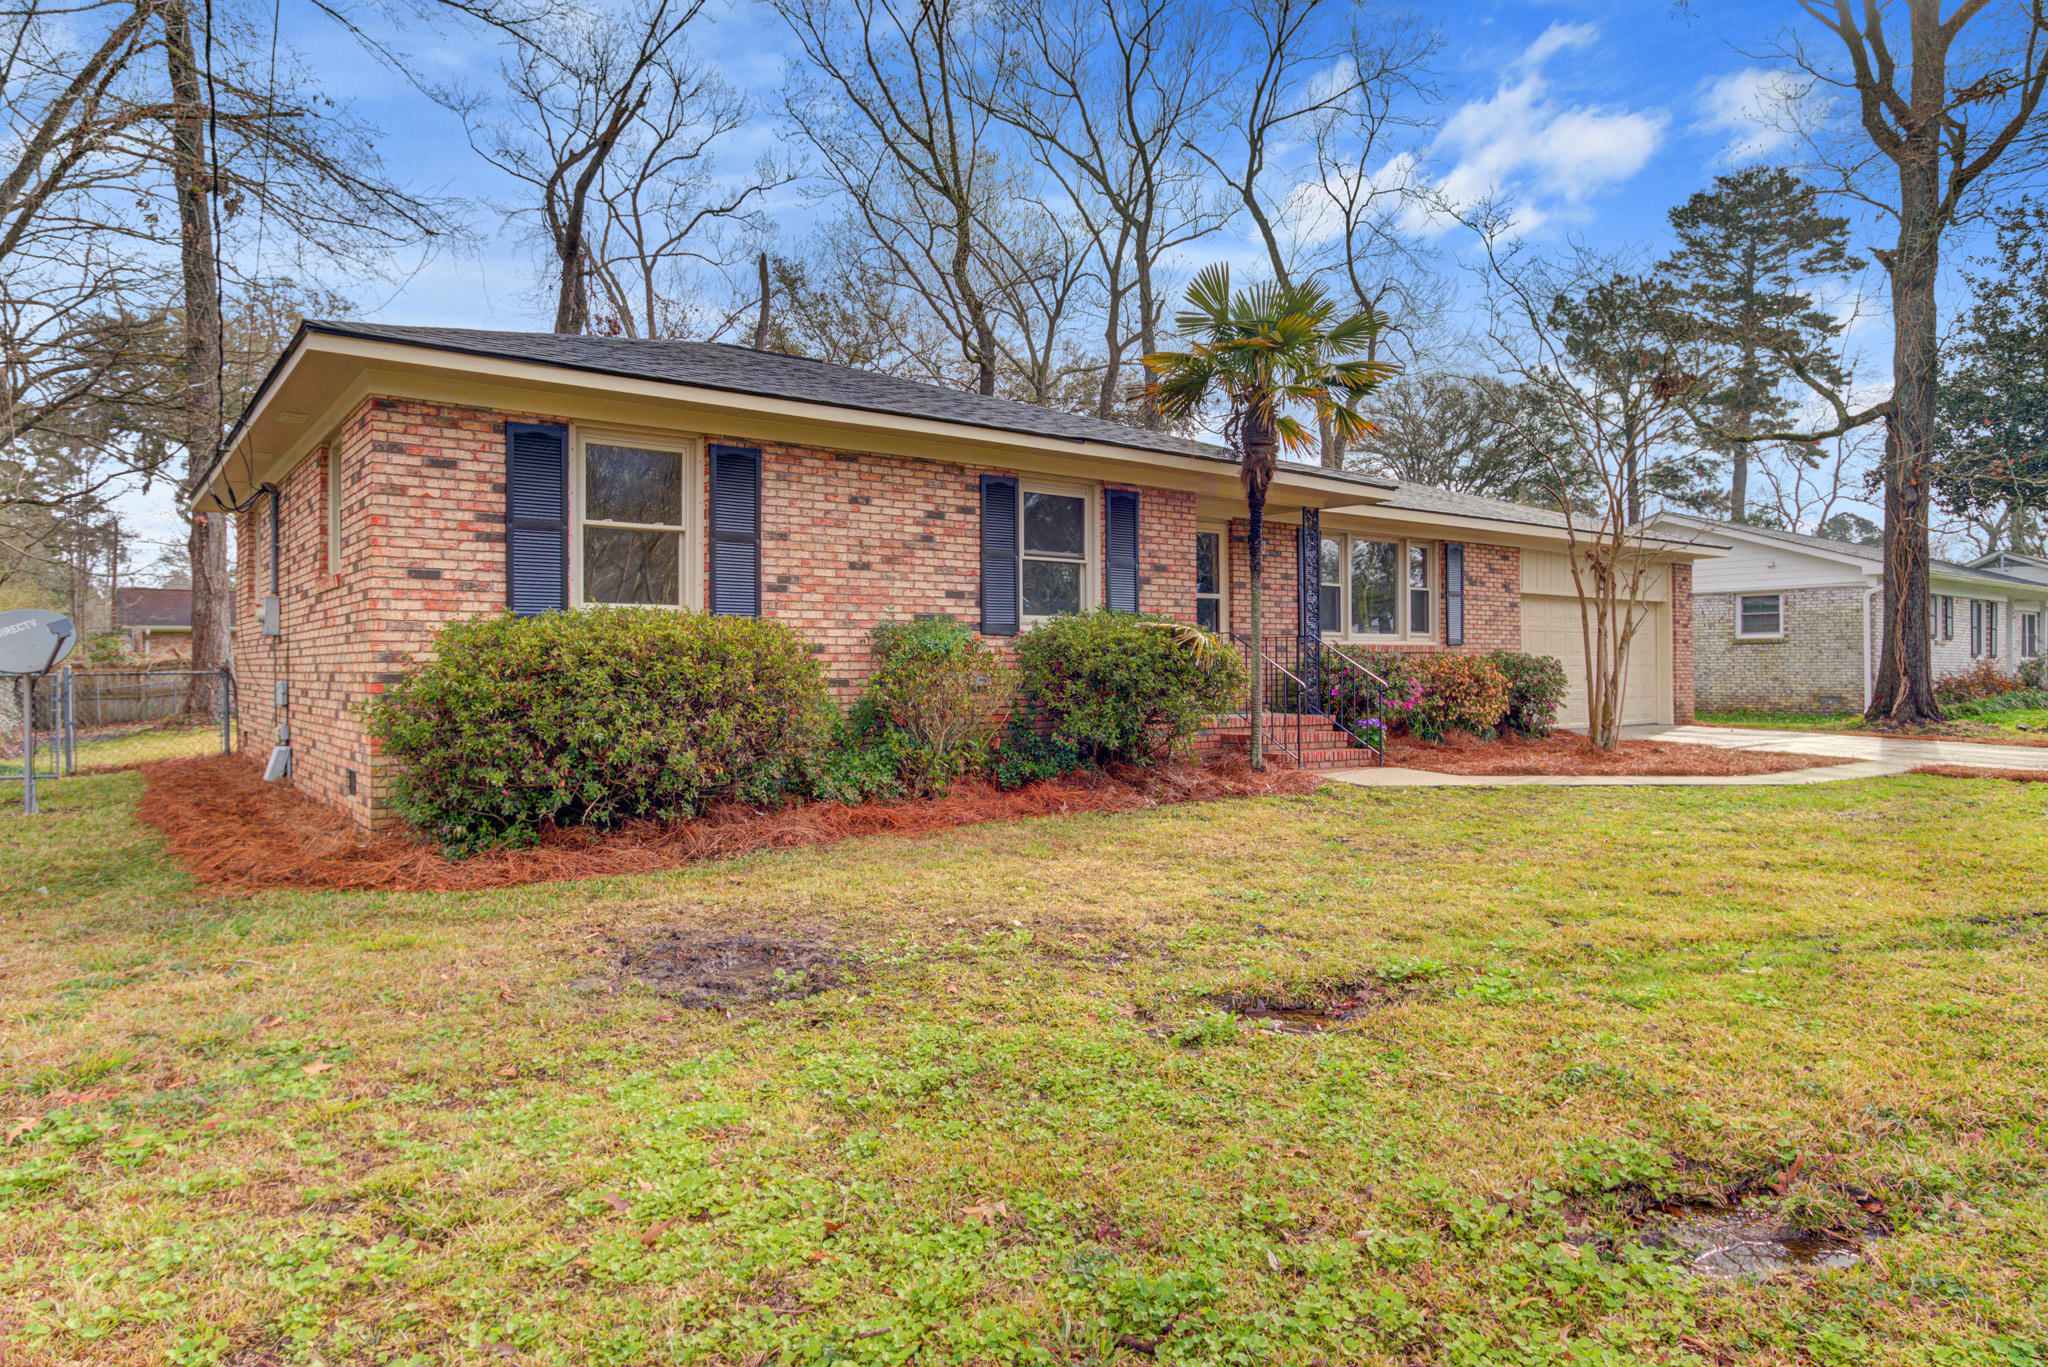 North Tranquil Acres Homes For Sale - 109 Monroe, Ladson, SC - 22